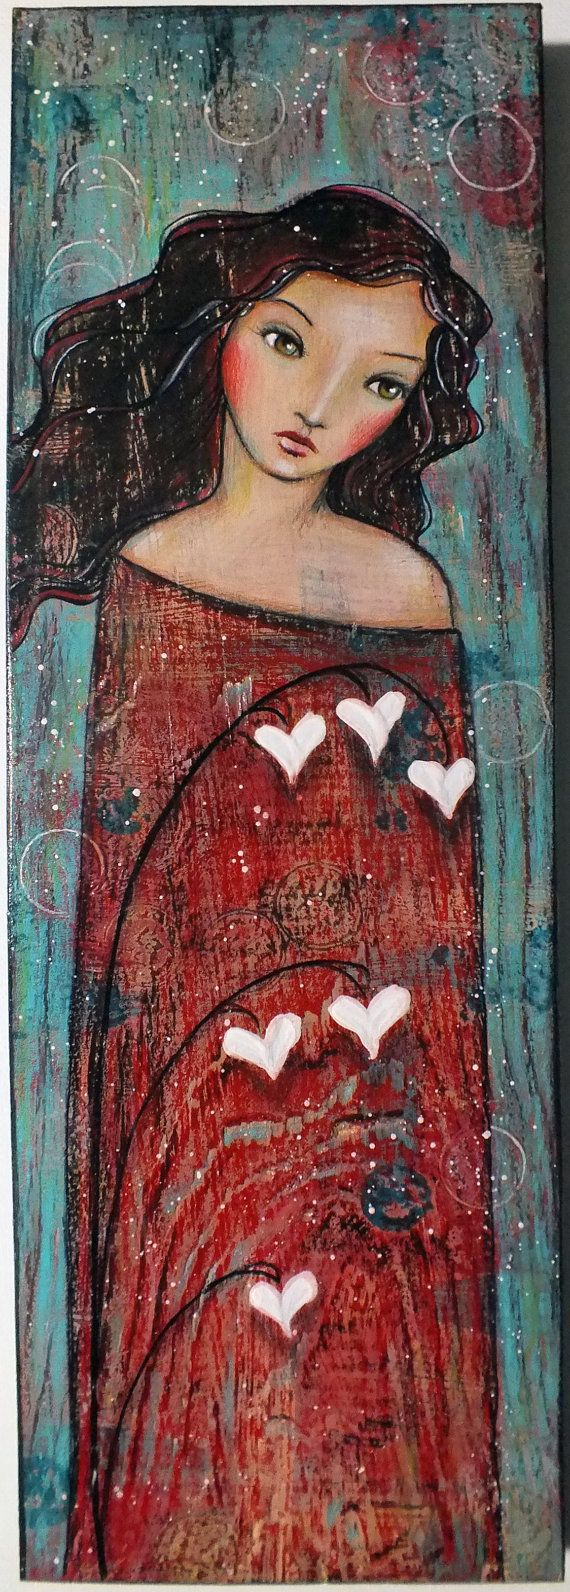 OOAK Original Folk Art Woman